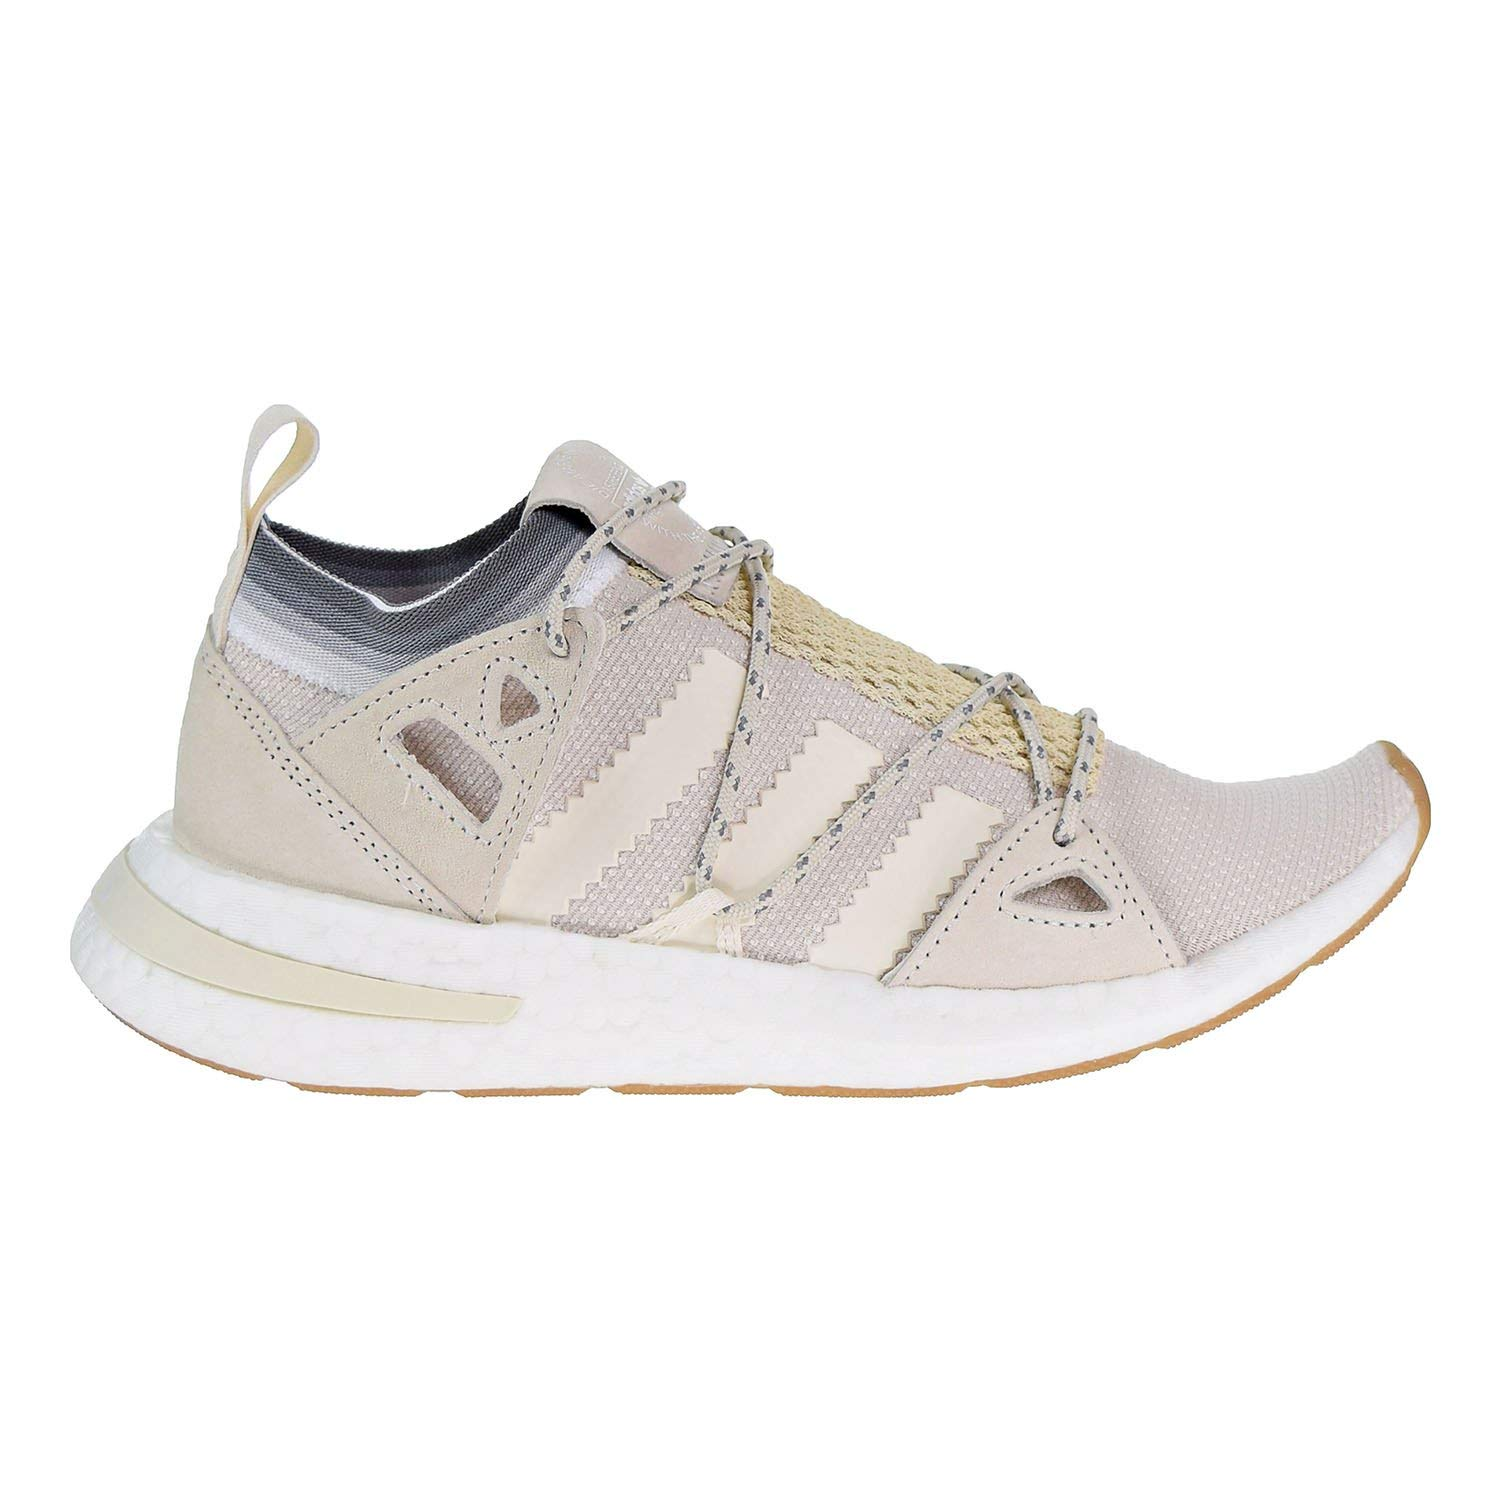 cec429994ad6 adidas Arkyn Women s Running Shoes Chalk White Footwear White Gum db1979  (5.5 M